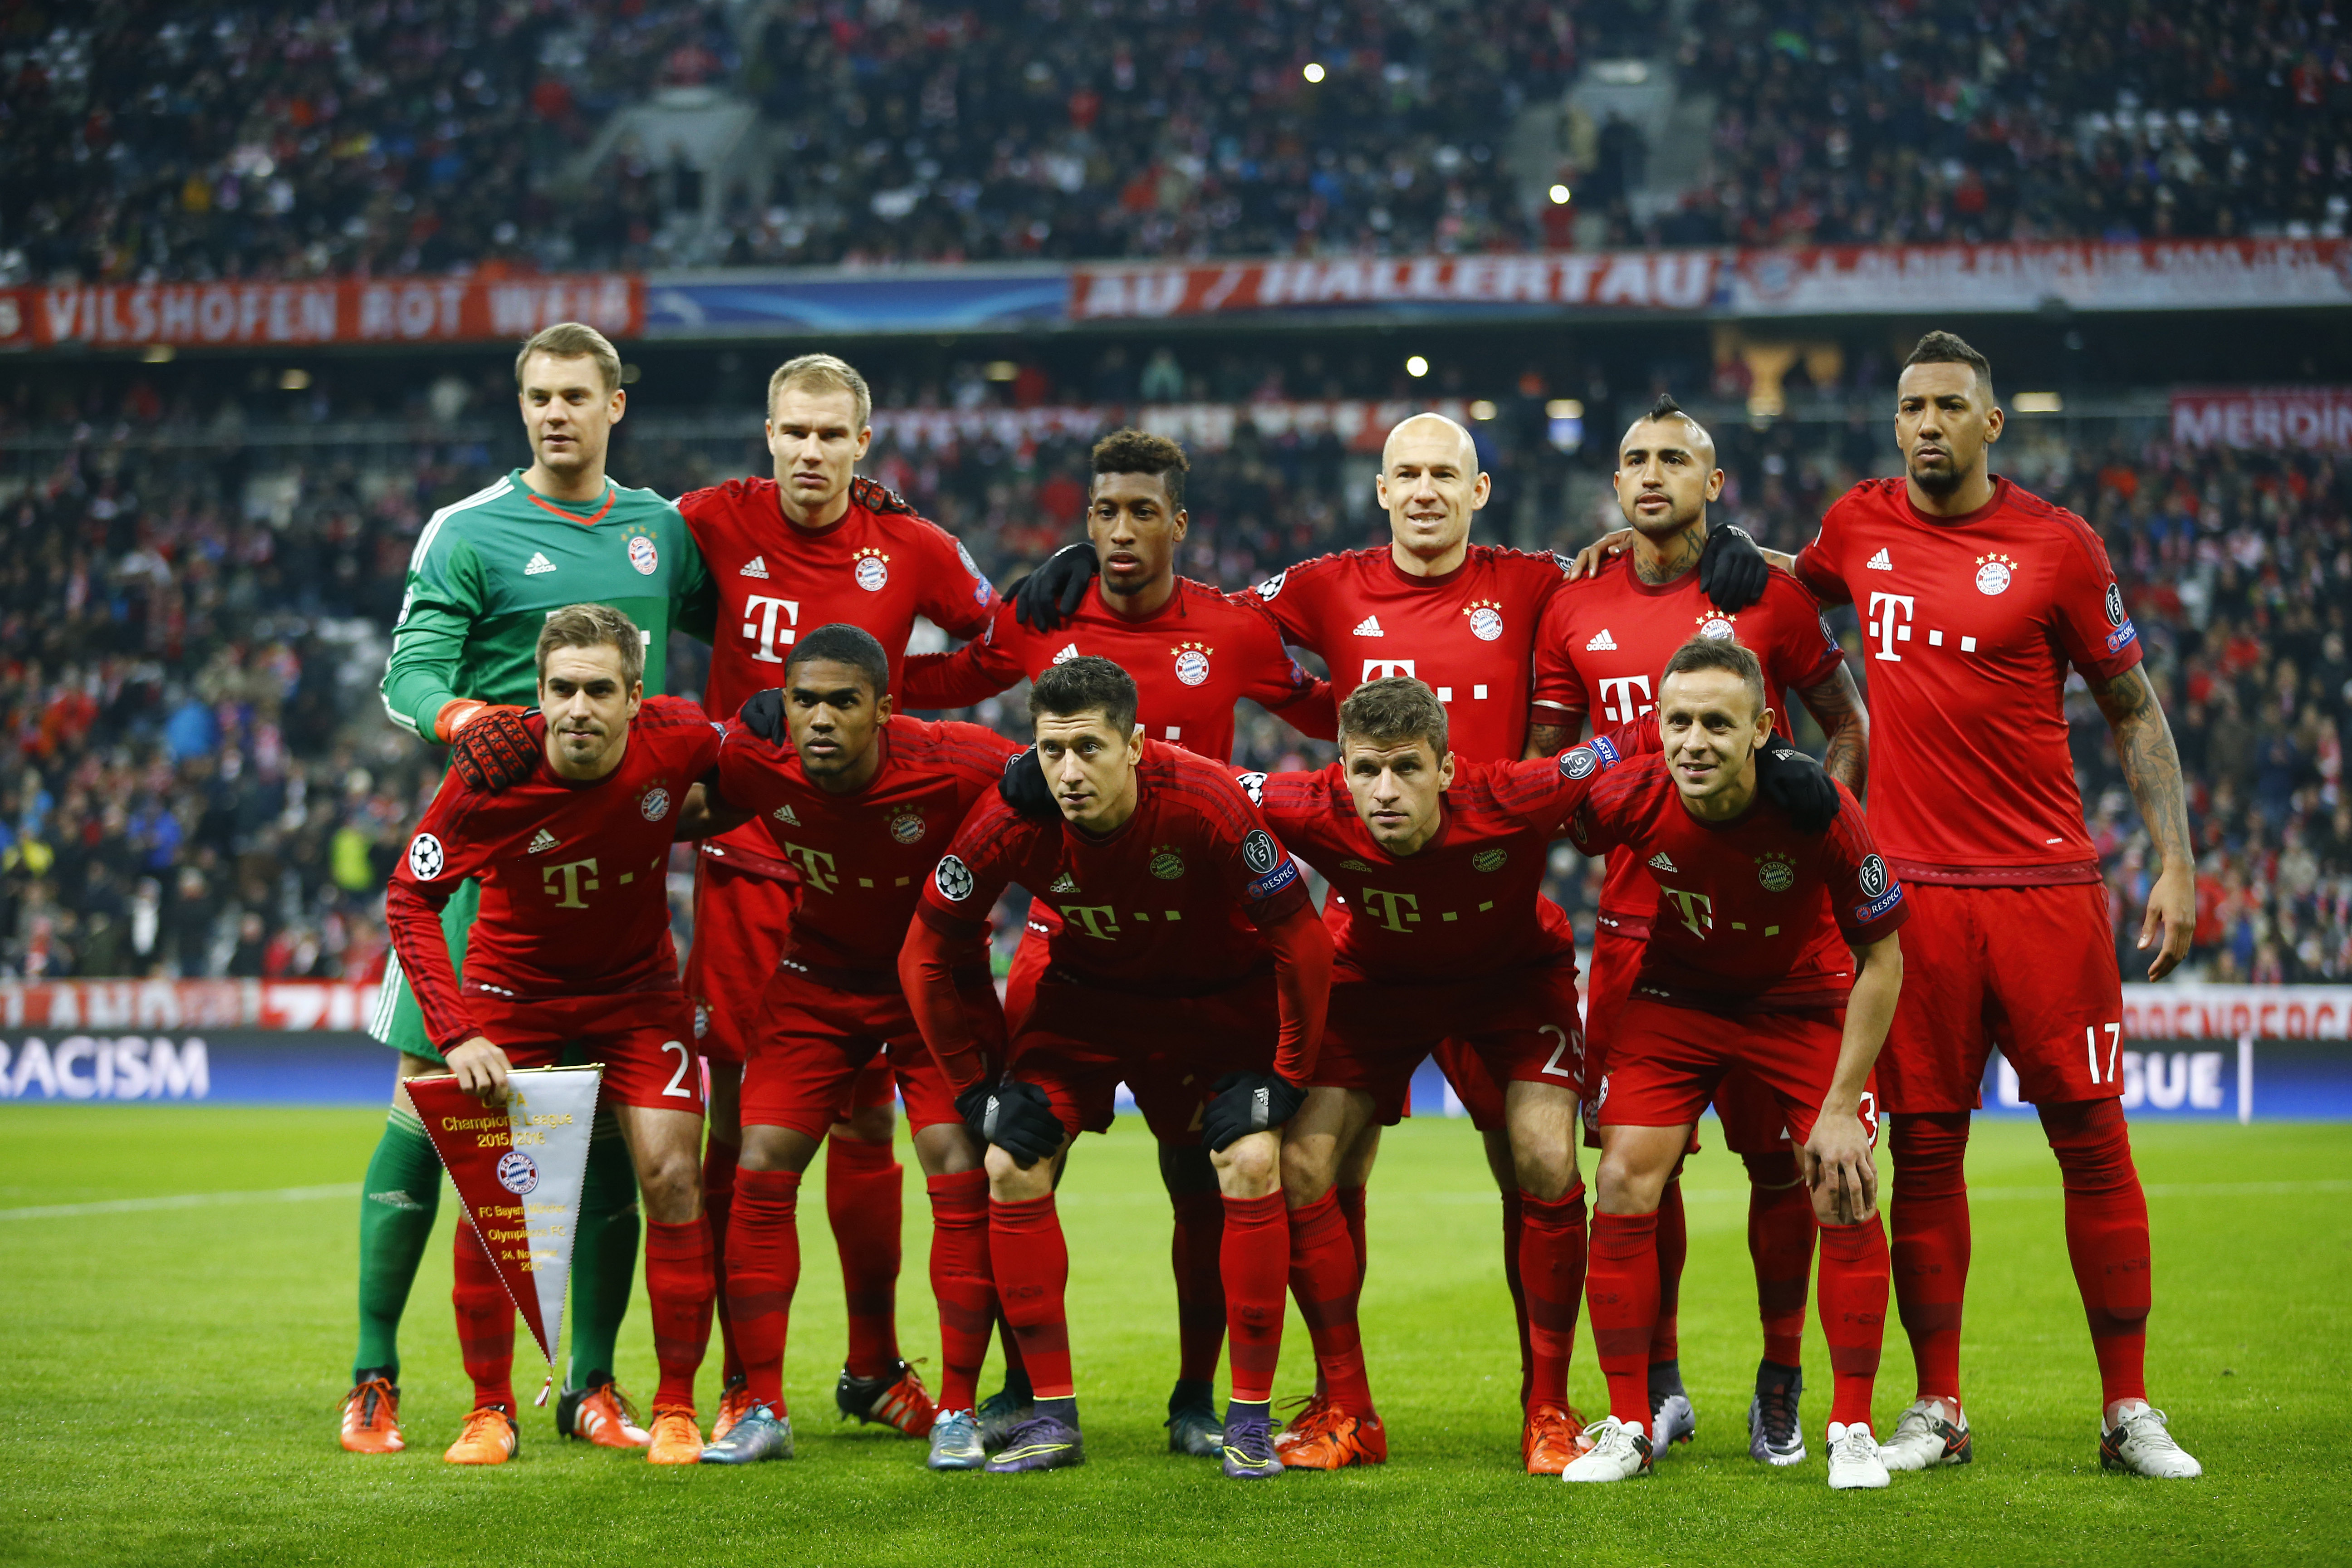 Bayern's  front row from left to right,  Philipp Lahm,  Douglas Costa, Robert Lewandowski, Thomas Mueller, Rafinha and back row from left to right goalkeeper Manuel Neuer, Holger Badstuber , Kingsley Coman, Arjen Robben, Arturo Vidal and Jerome Boateng, pose prior the start of the Champions League Group F soccer match between FC Bayern Munich and Olympiakos Piraeus in Munich, Germany, Tuesday November 24, 2015. Photo: AP